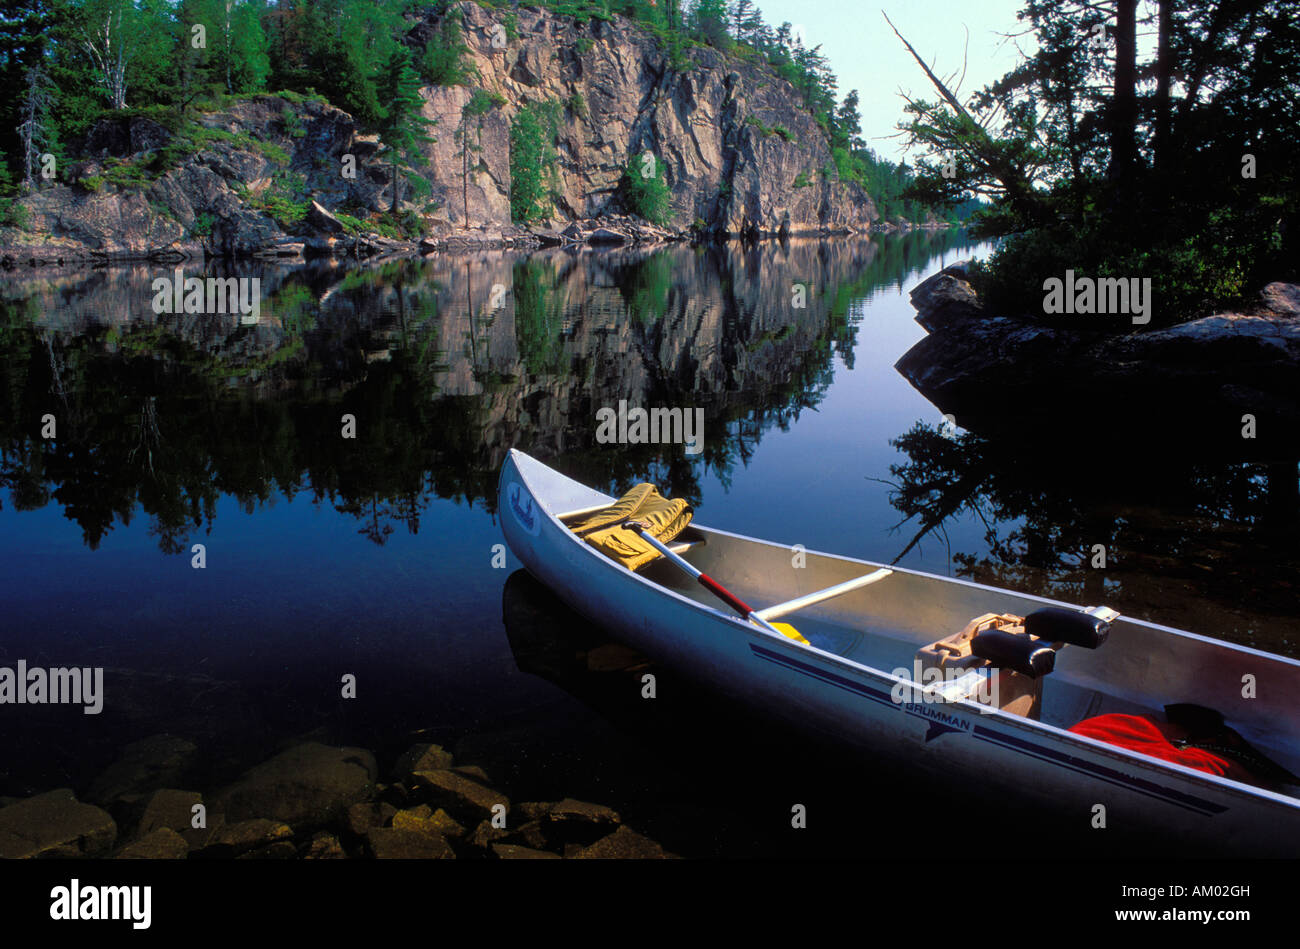 Canoe on Seagull Lake in the Boundary Waters Canoe Area Wilderness BWCAW Minnesota - Stock Image